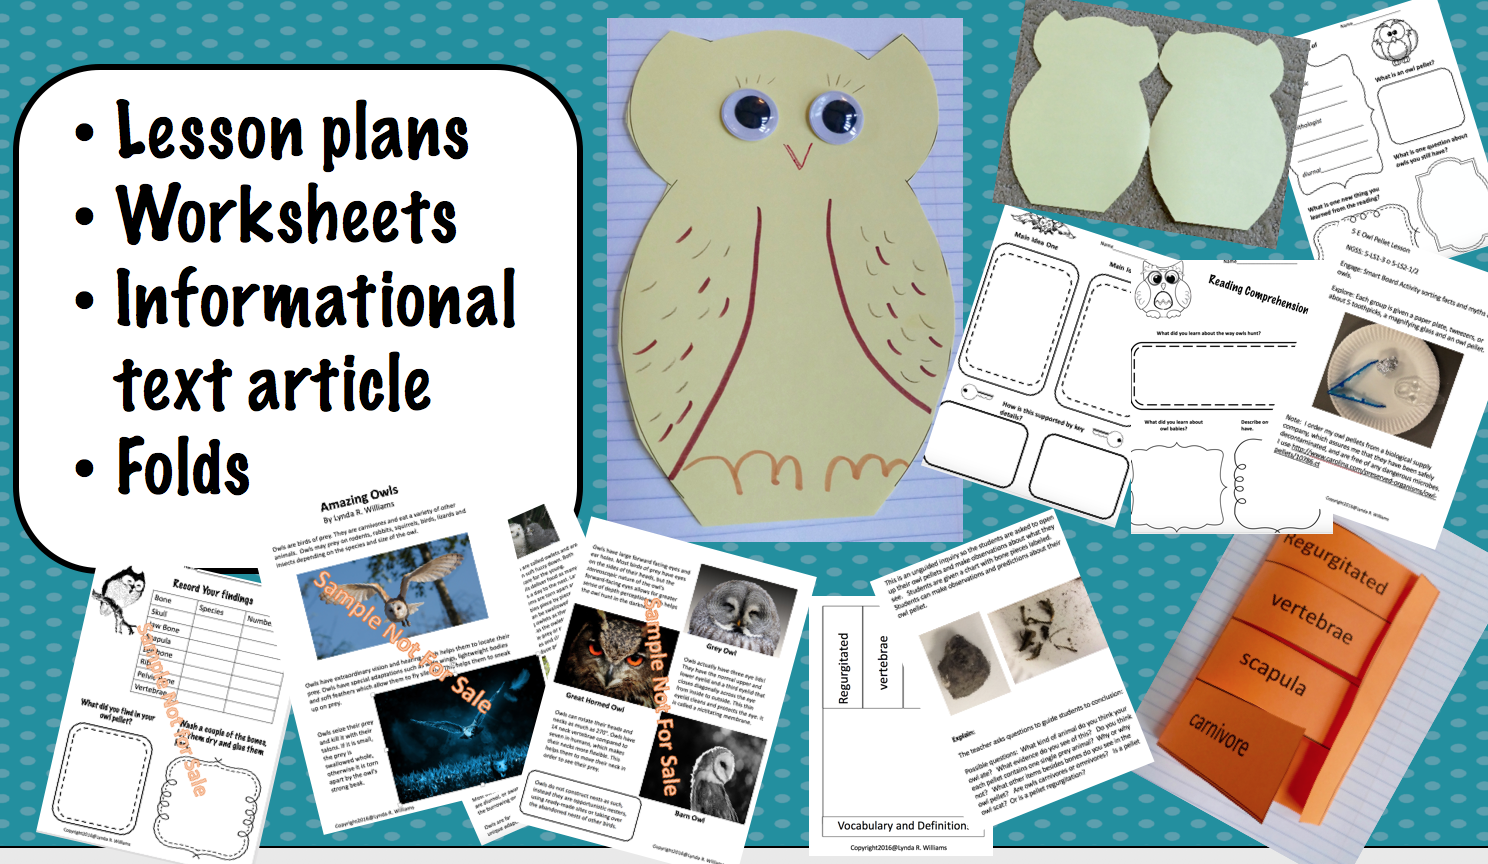 Food Chains Through Animal Track Mold Inquiry Lesson Idea